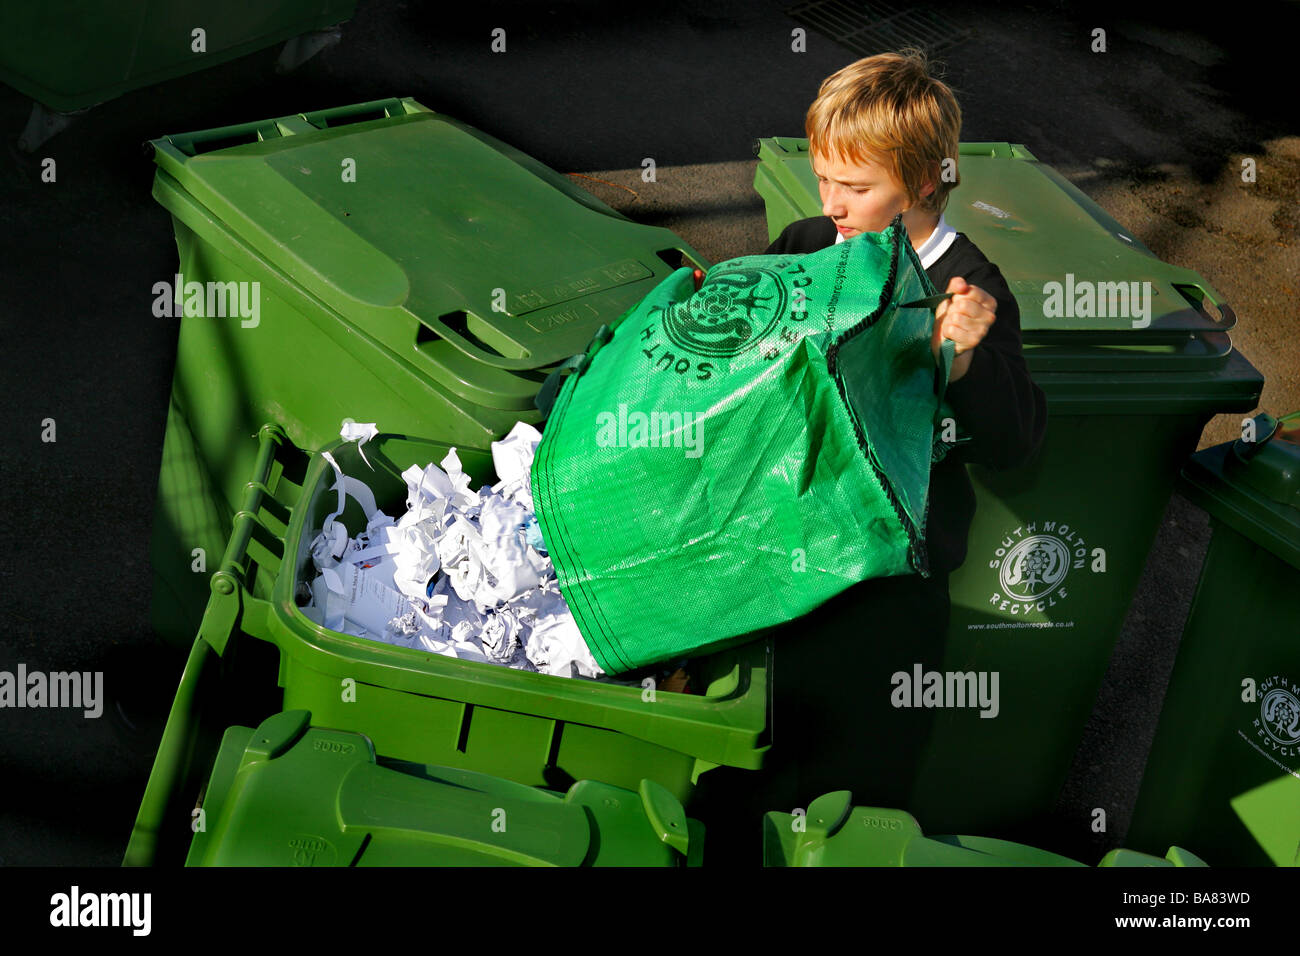 school pupil recycling paper *EDITORIAL USE ONLY* - Stock Image